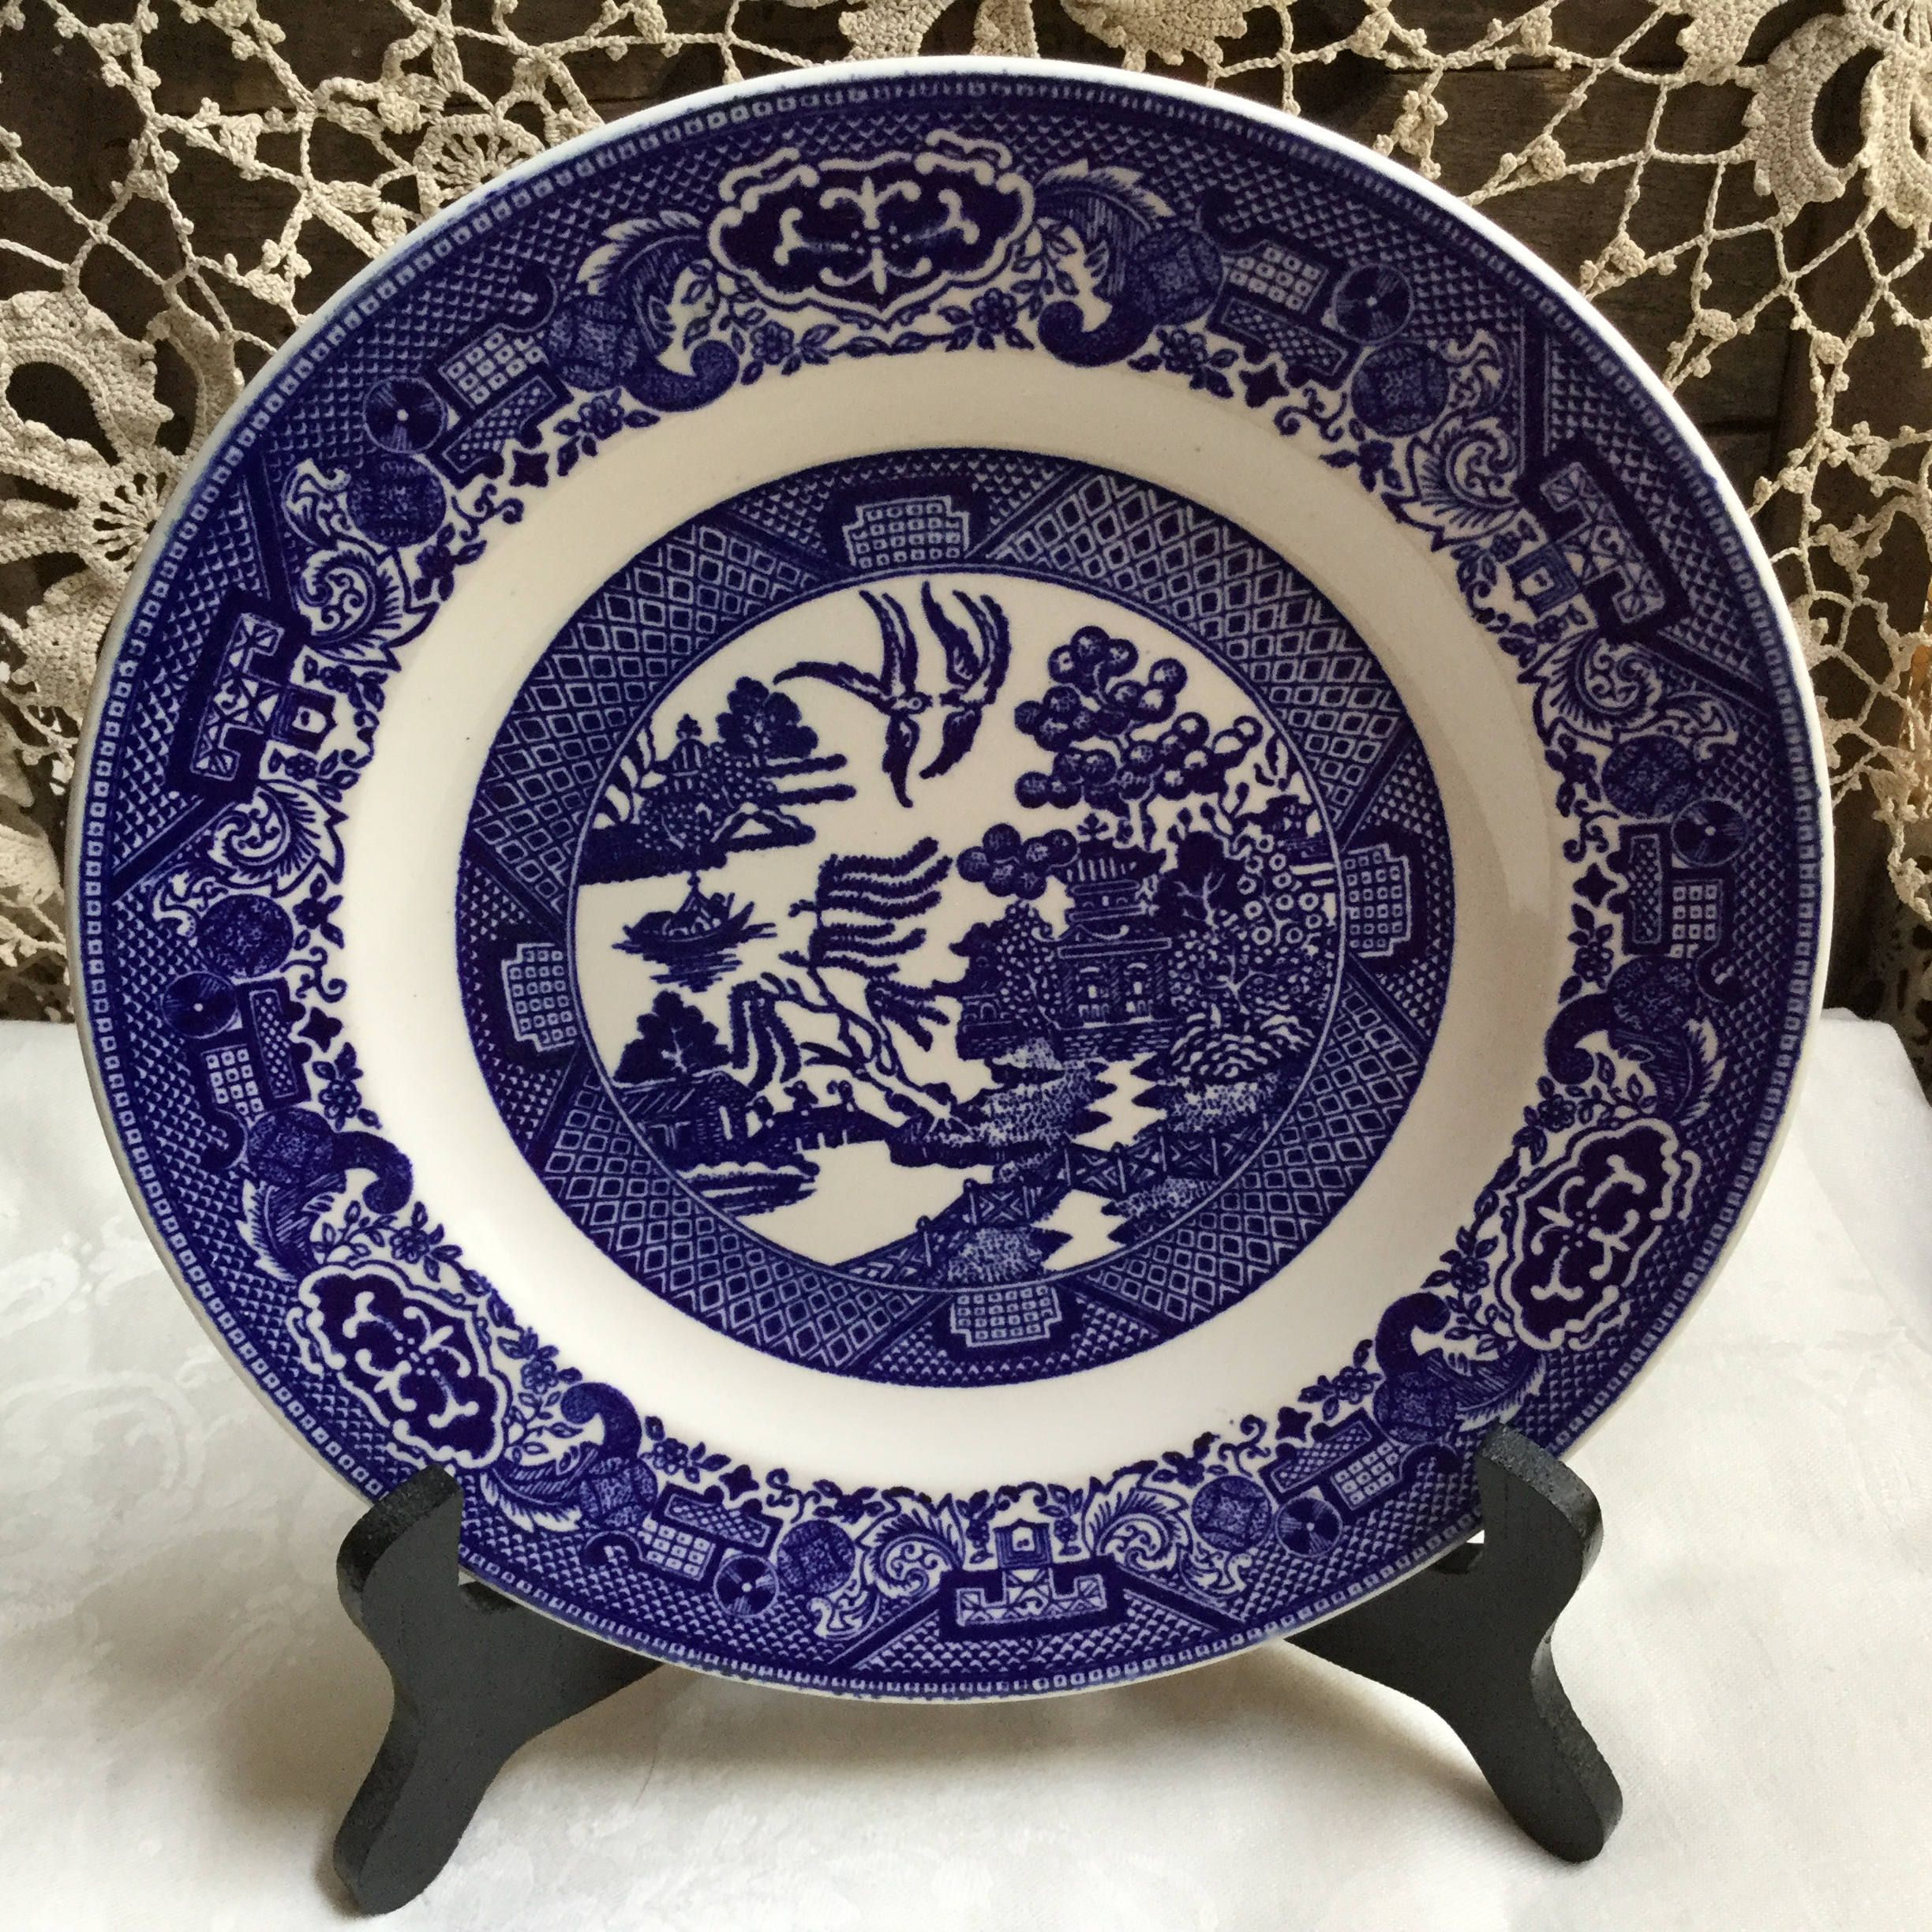 Willow Ware Royal China Usa 10 Inch Dinner Plate By Sunshinevintagegoods On Etsy Willow Ware Vintage Plates Vintage